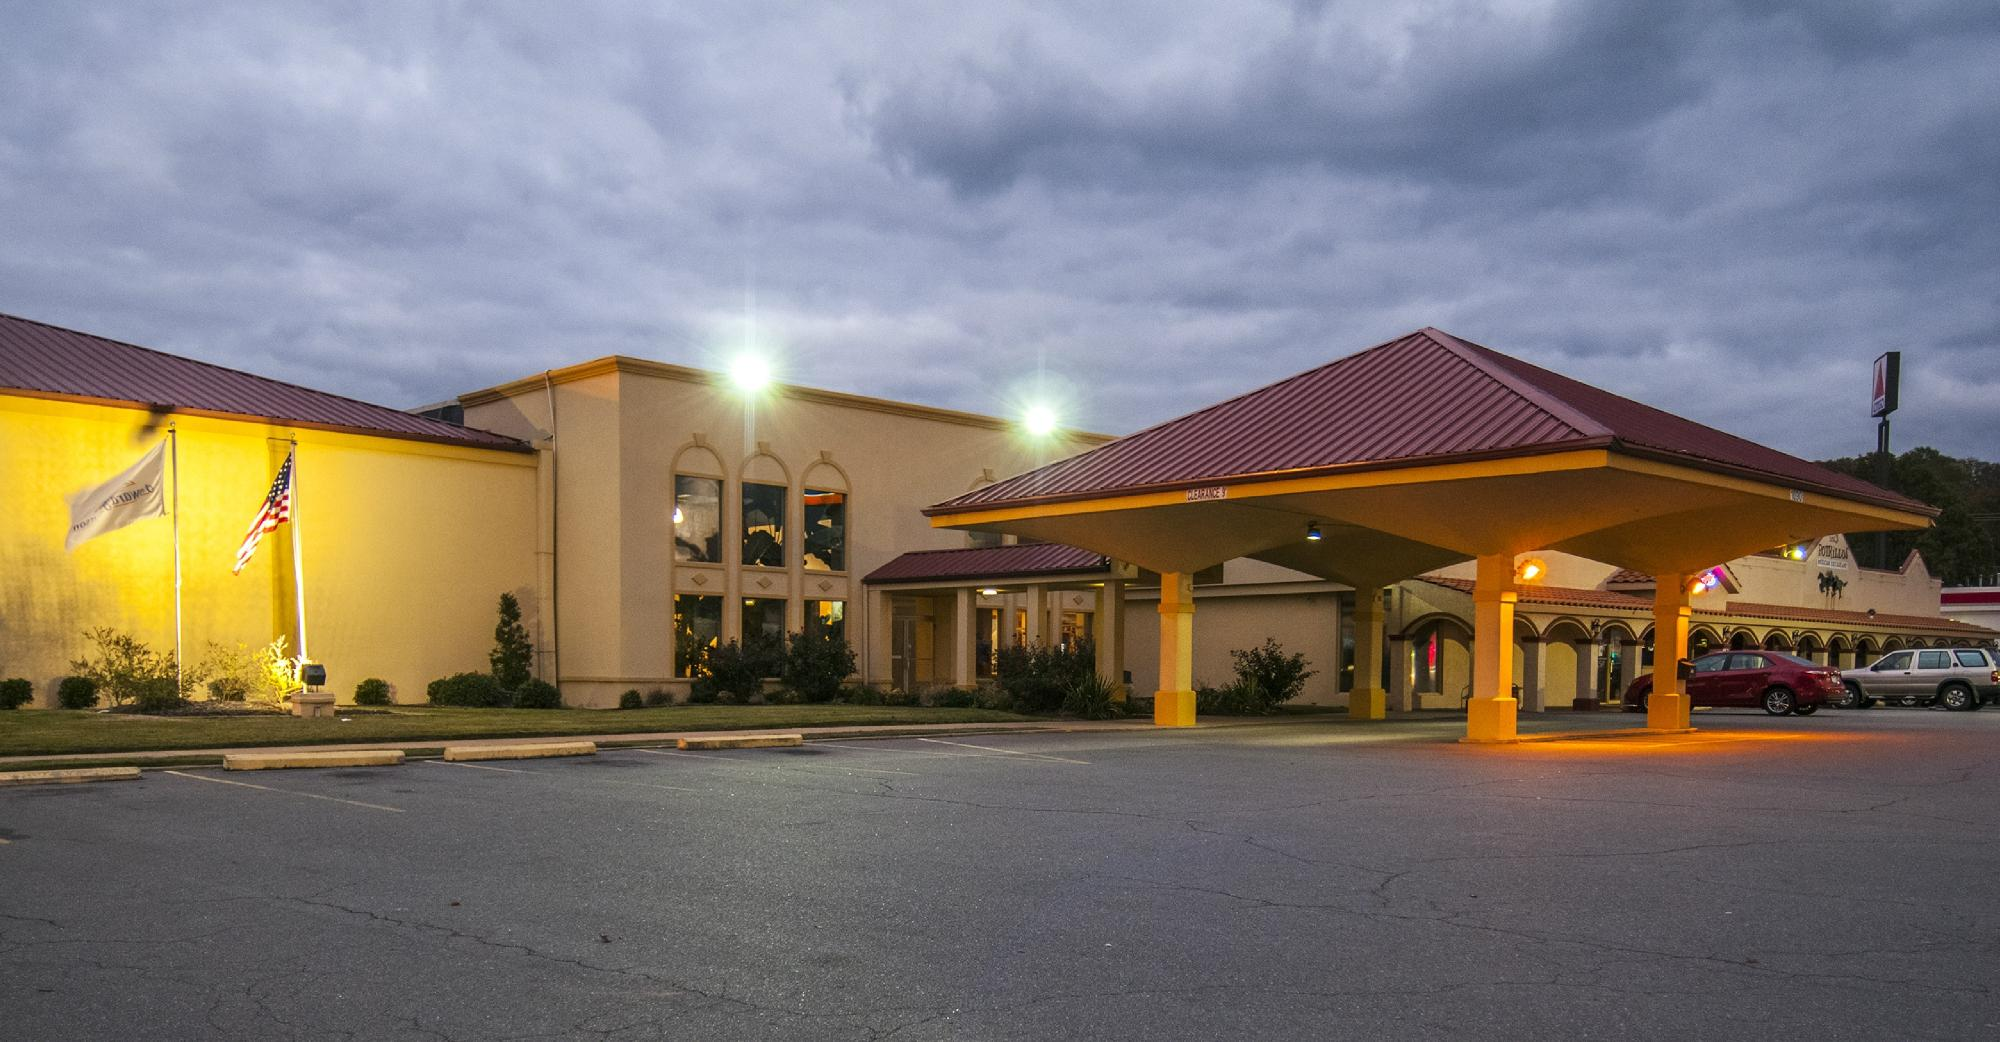 Hotels Motels - Yahoo Local Search Results